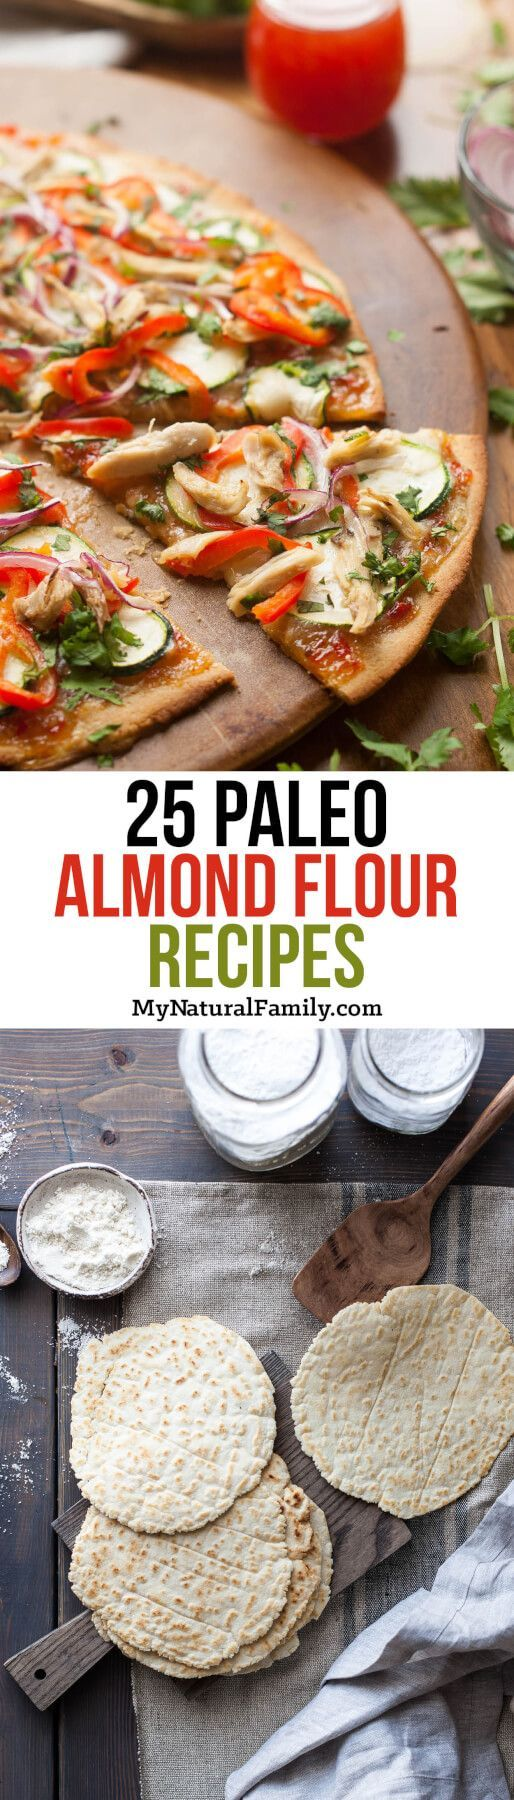 Paleo Almond Flour Recipes